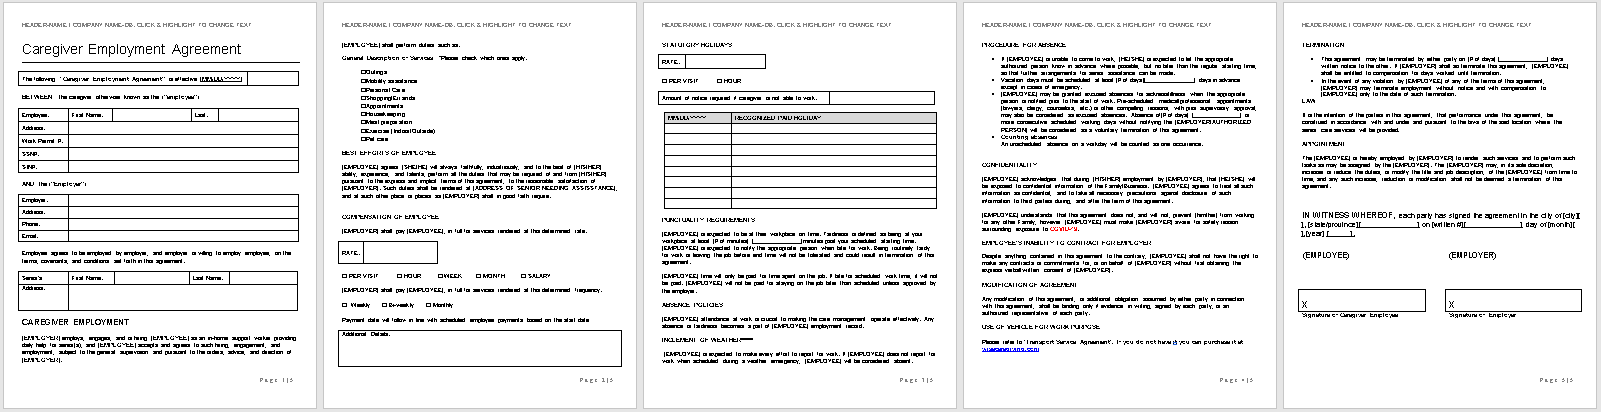 Caregiver Employment Agreement-full preview of template-wise caregiving